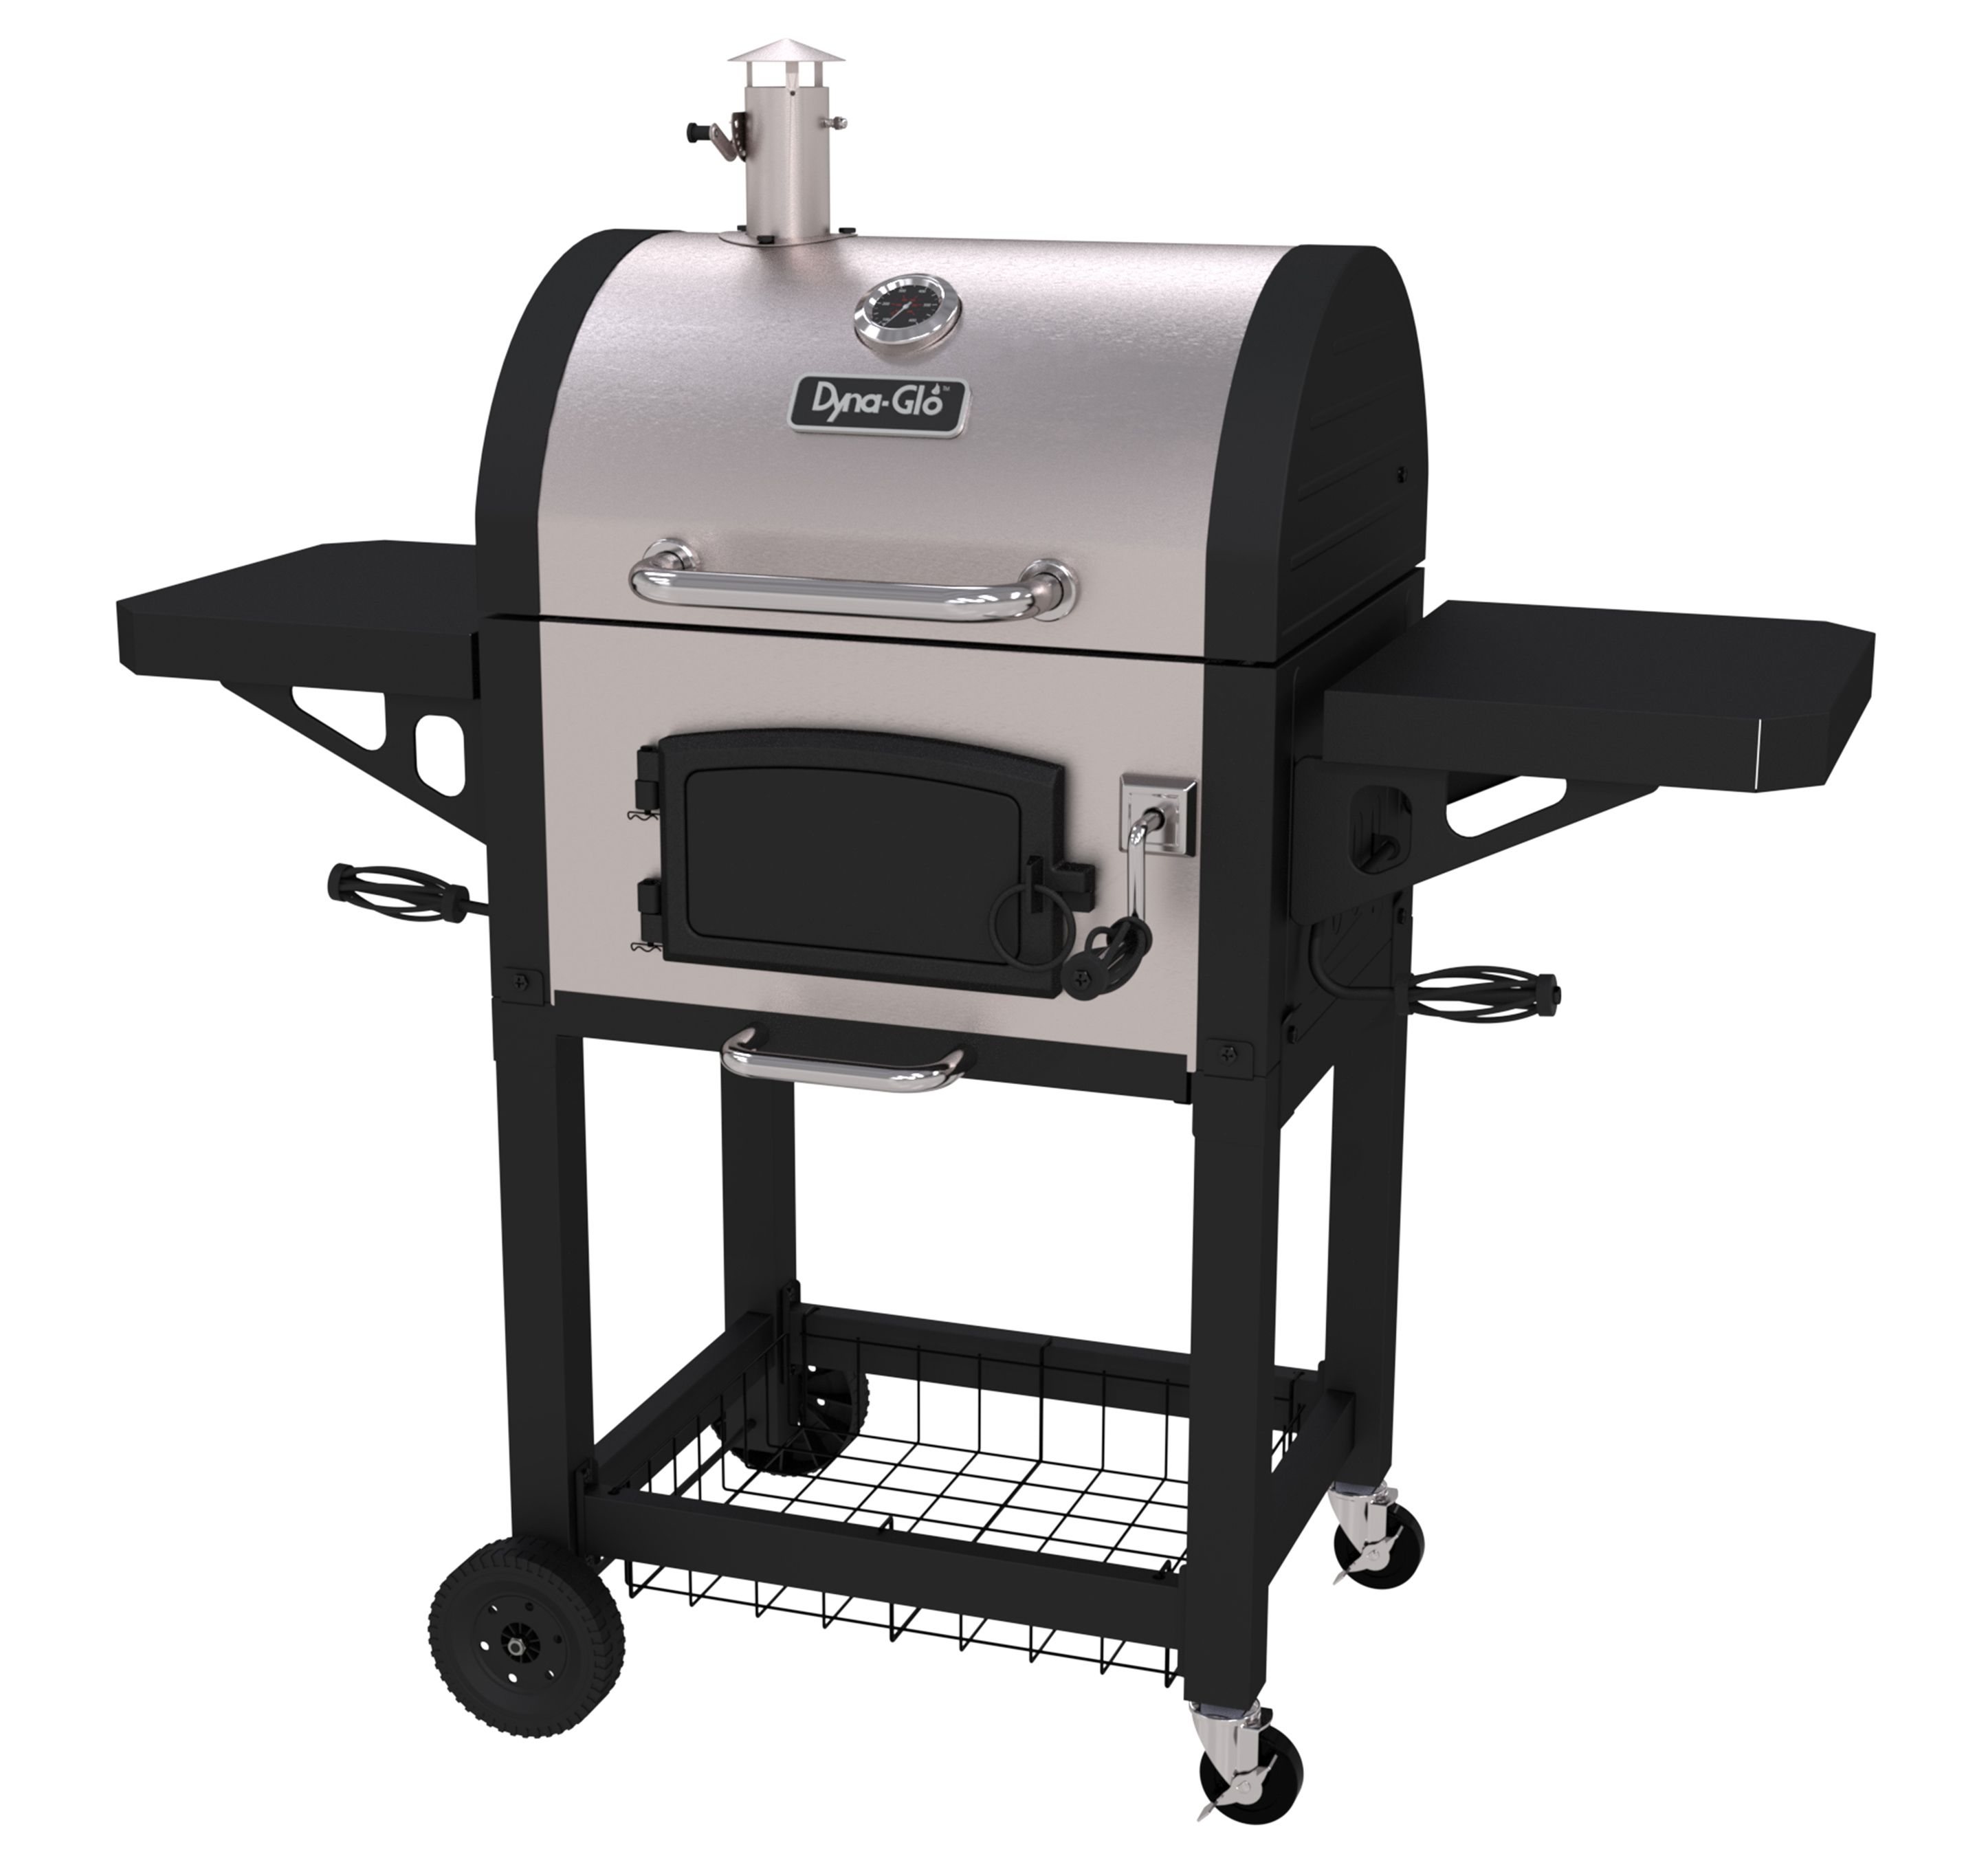 Dyna Glo Dgn405snc D Stainless Steel Heavy Duty Compact Charcoal Grill